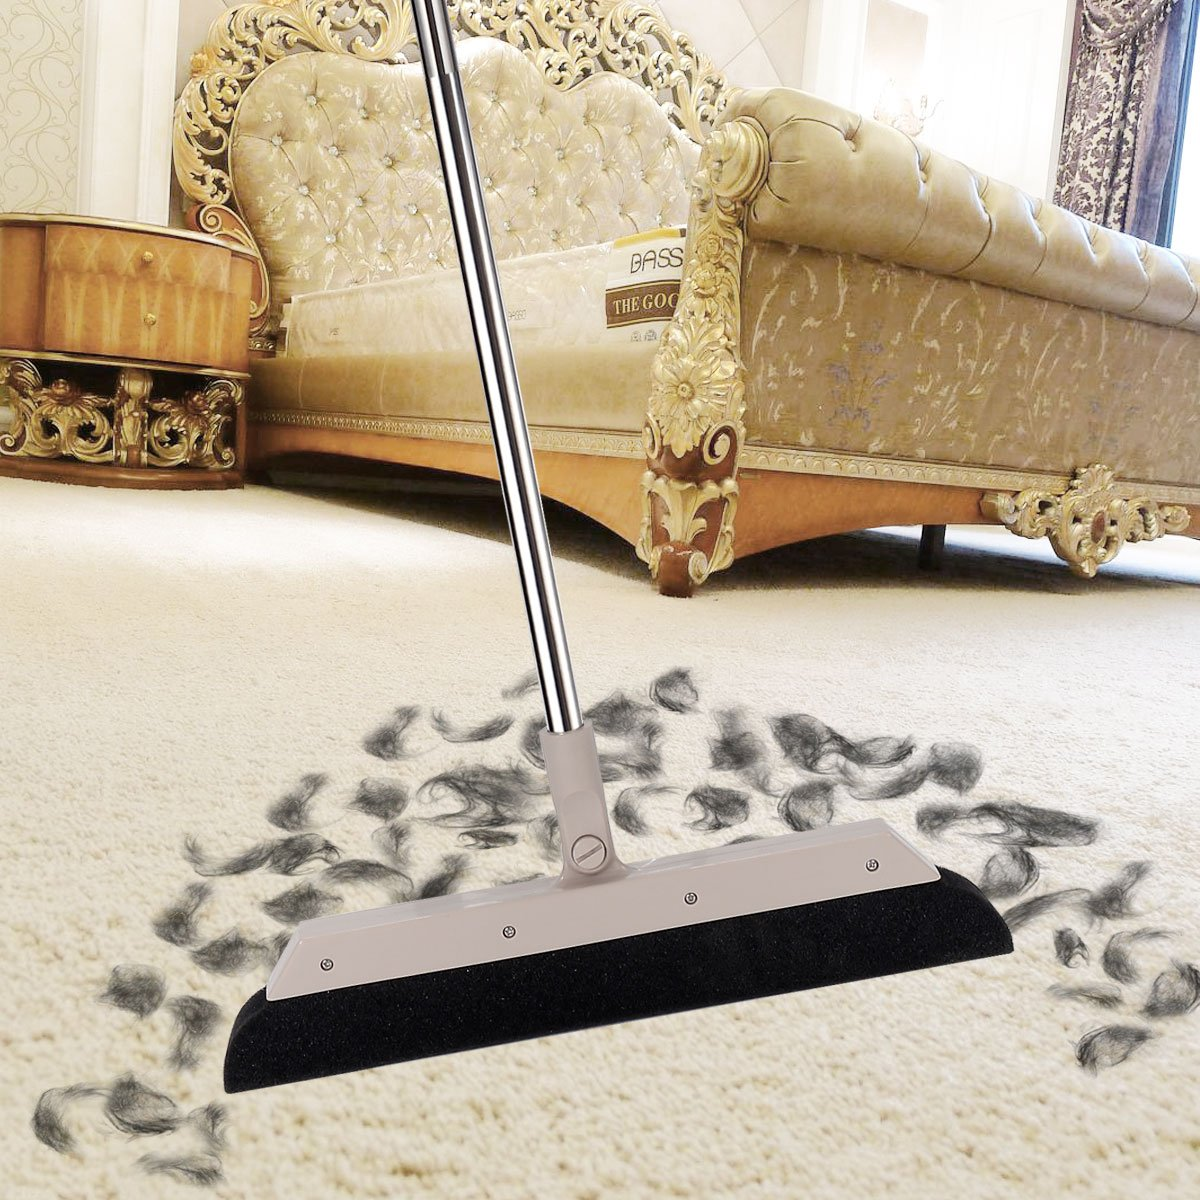 MEIBEI Sponge Broom Dust Cleaner, 37.4'' Adjustable Long Handle with 13.8'' Wide Blade, Perfect for Wood Tile Marble Carpet & Glass by MEIBEI (Image #2)